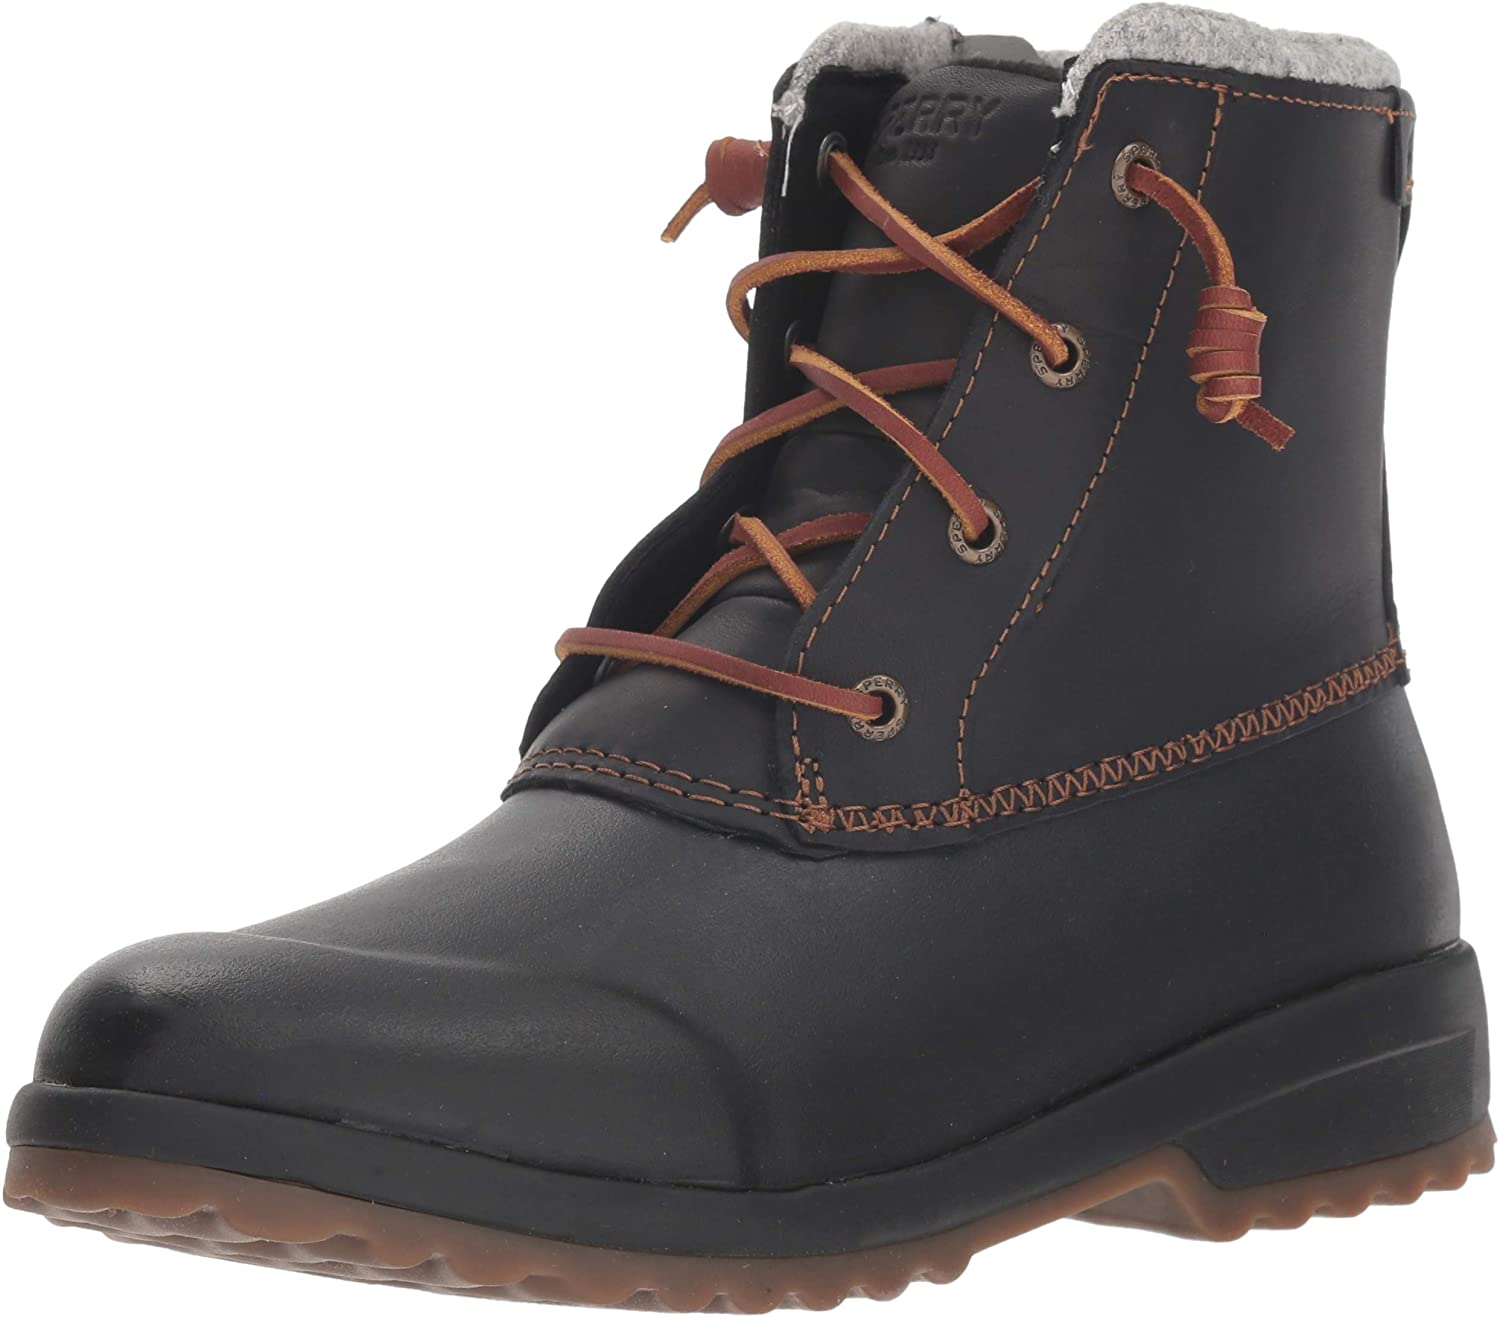 Sperry Women's Maritime Repel Boots